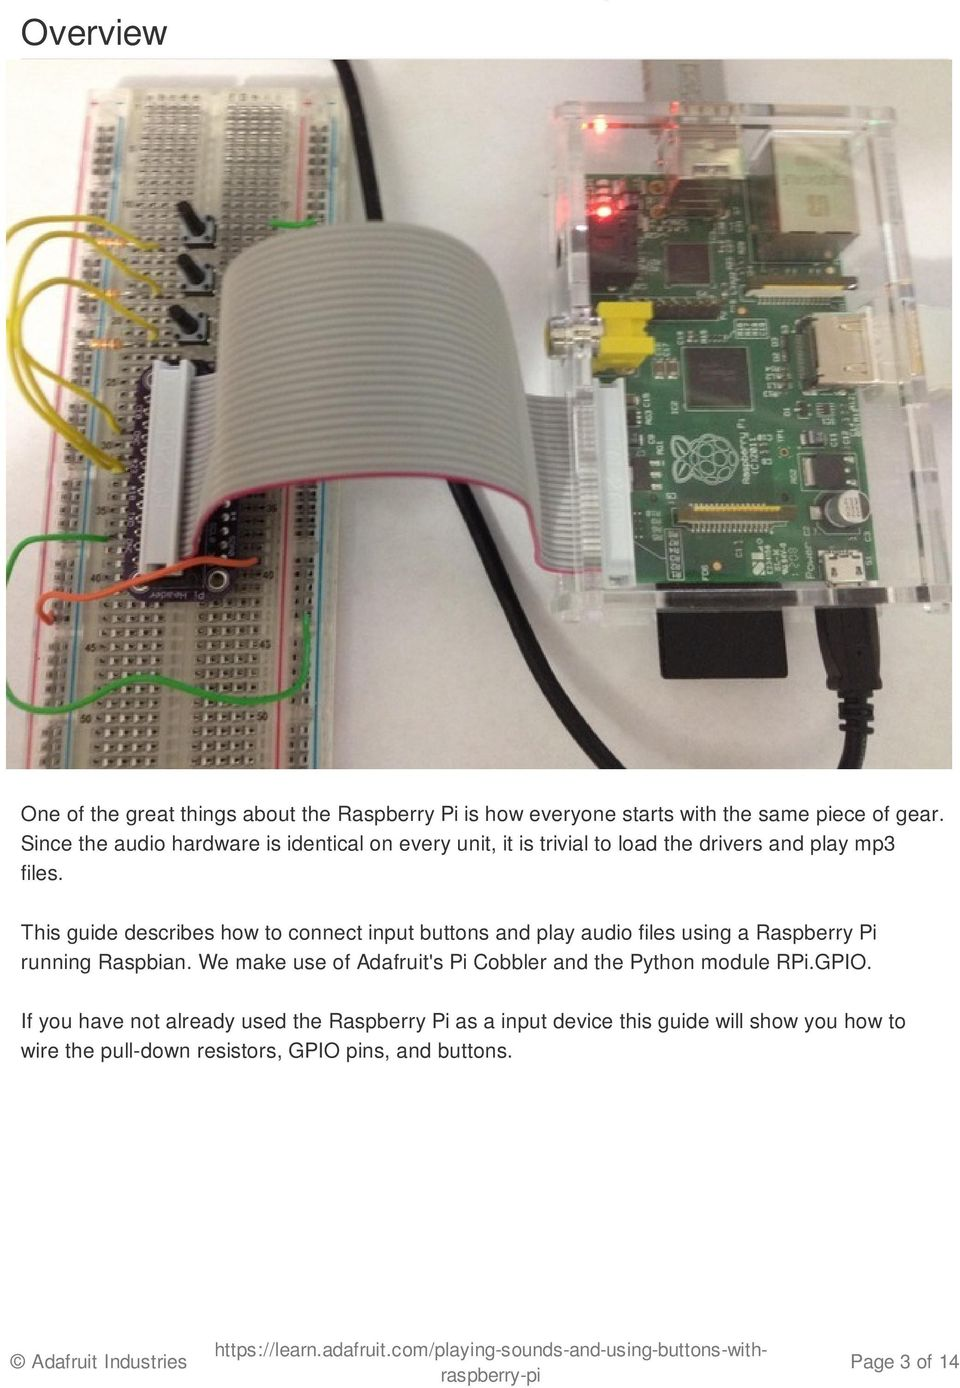 Playing sounds and using buttons with Raspberry Pi - PDF